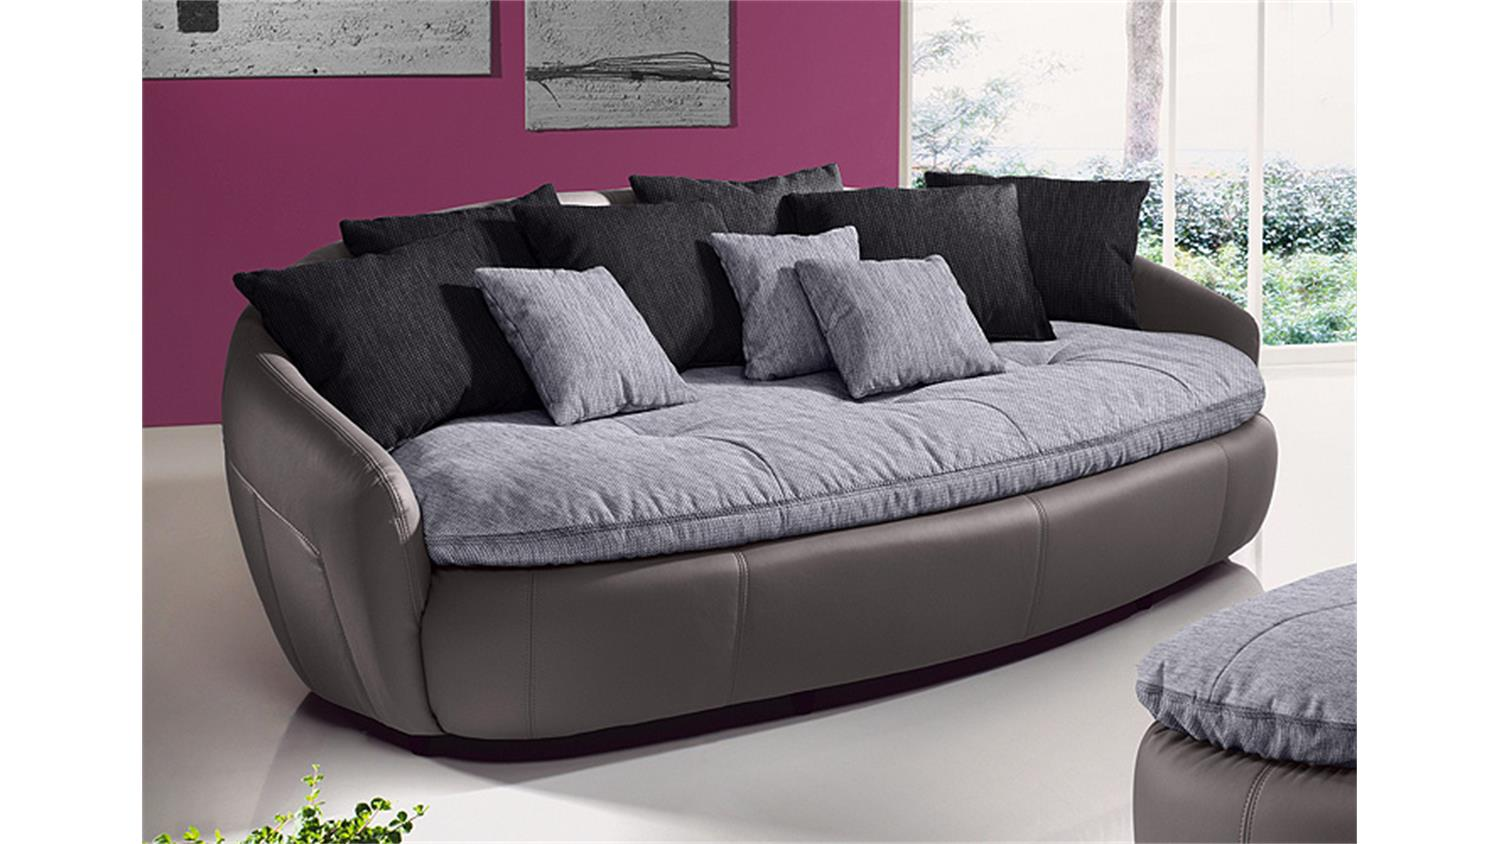 couch grau schwarz cheap large size of sofa grau schwarz ecksofa grey brown leather chair walls. Black Bedroom Furniture Sets. Home Design Ideas